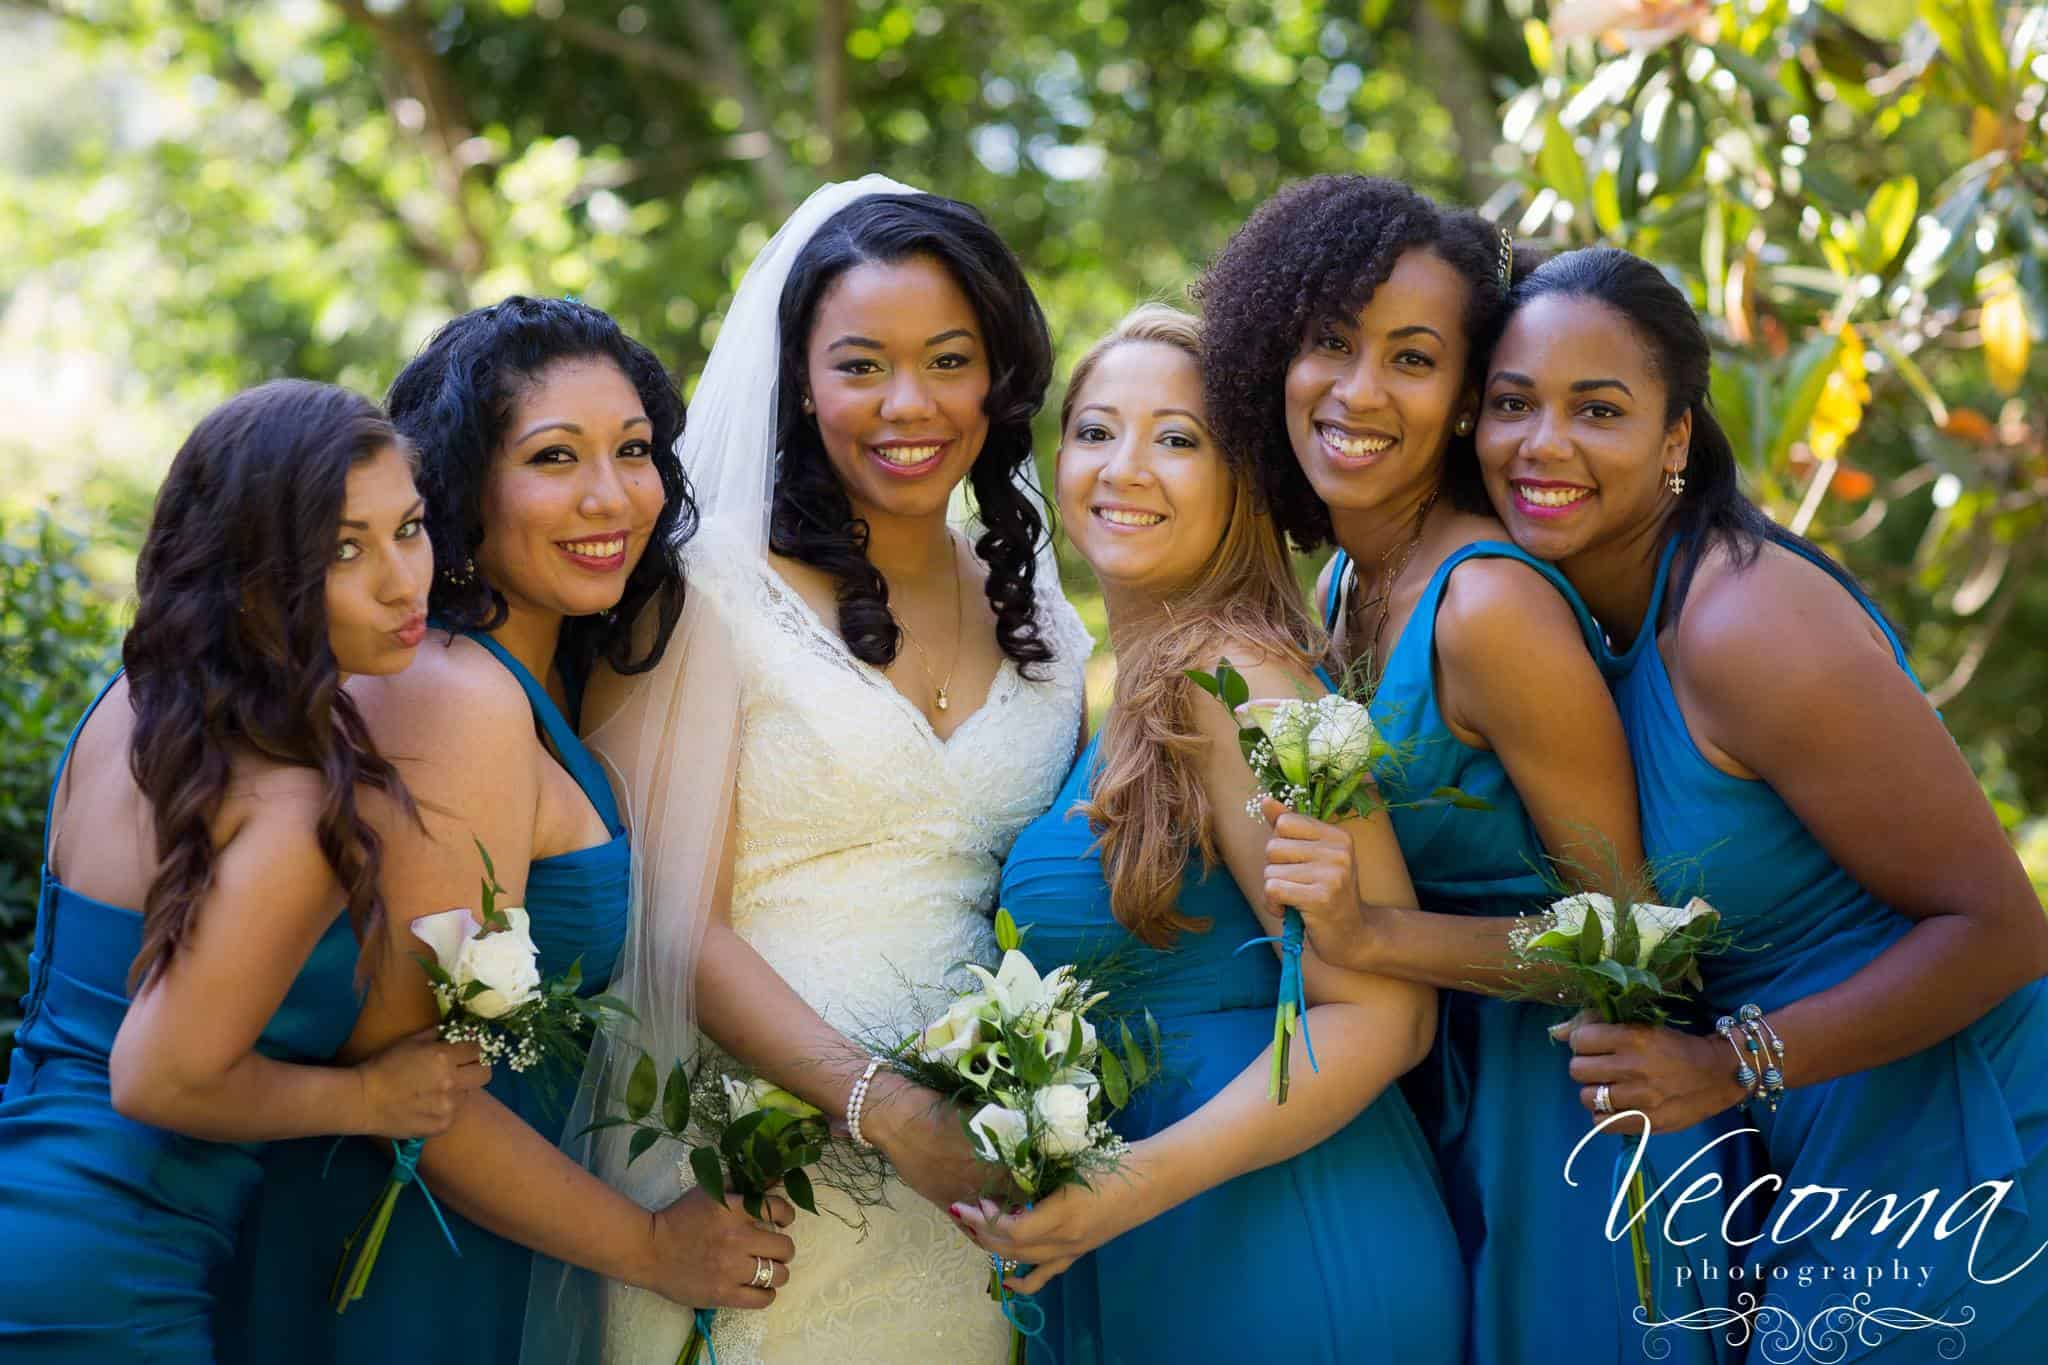 Congratulations jessica and caleb vecoma at the yellow the bridesmaids looked ravishing each in a different style of blue dress but all in the same bright cerulean shade jc10 ombrellifo Gallery